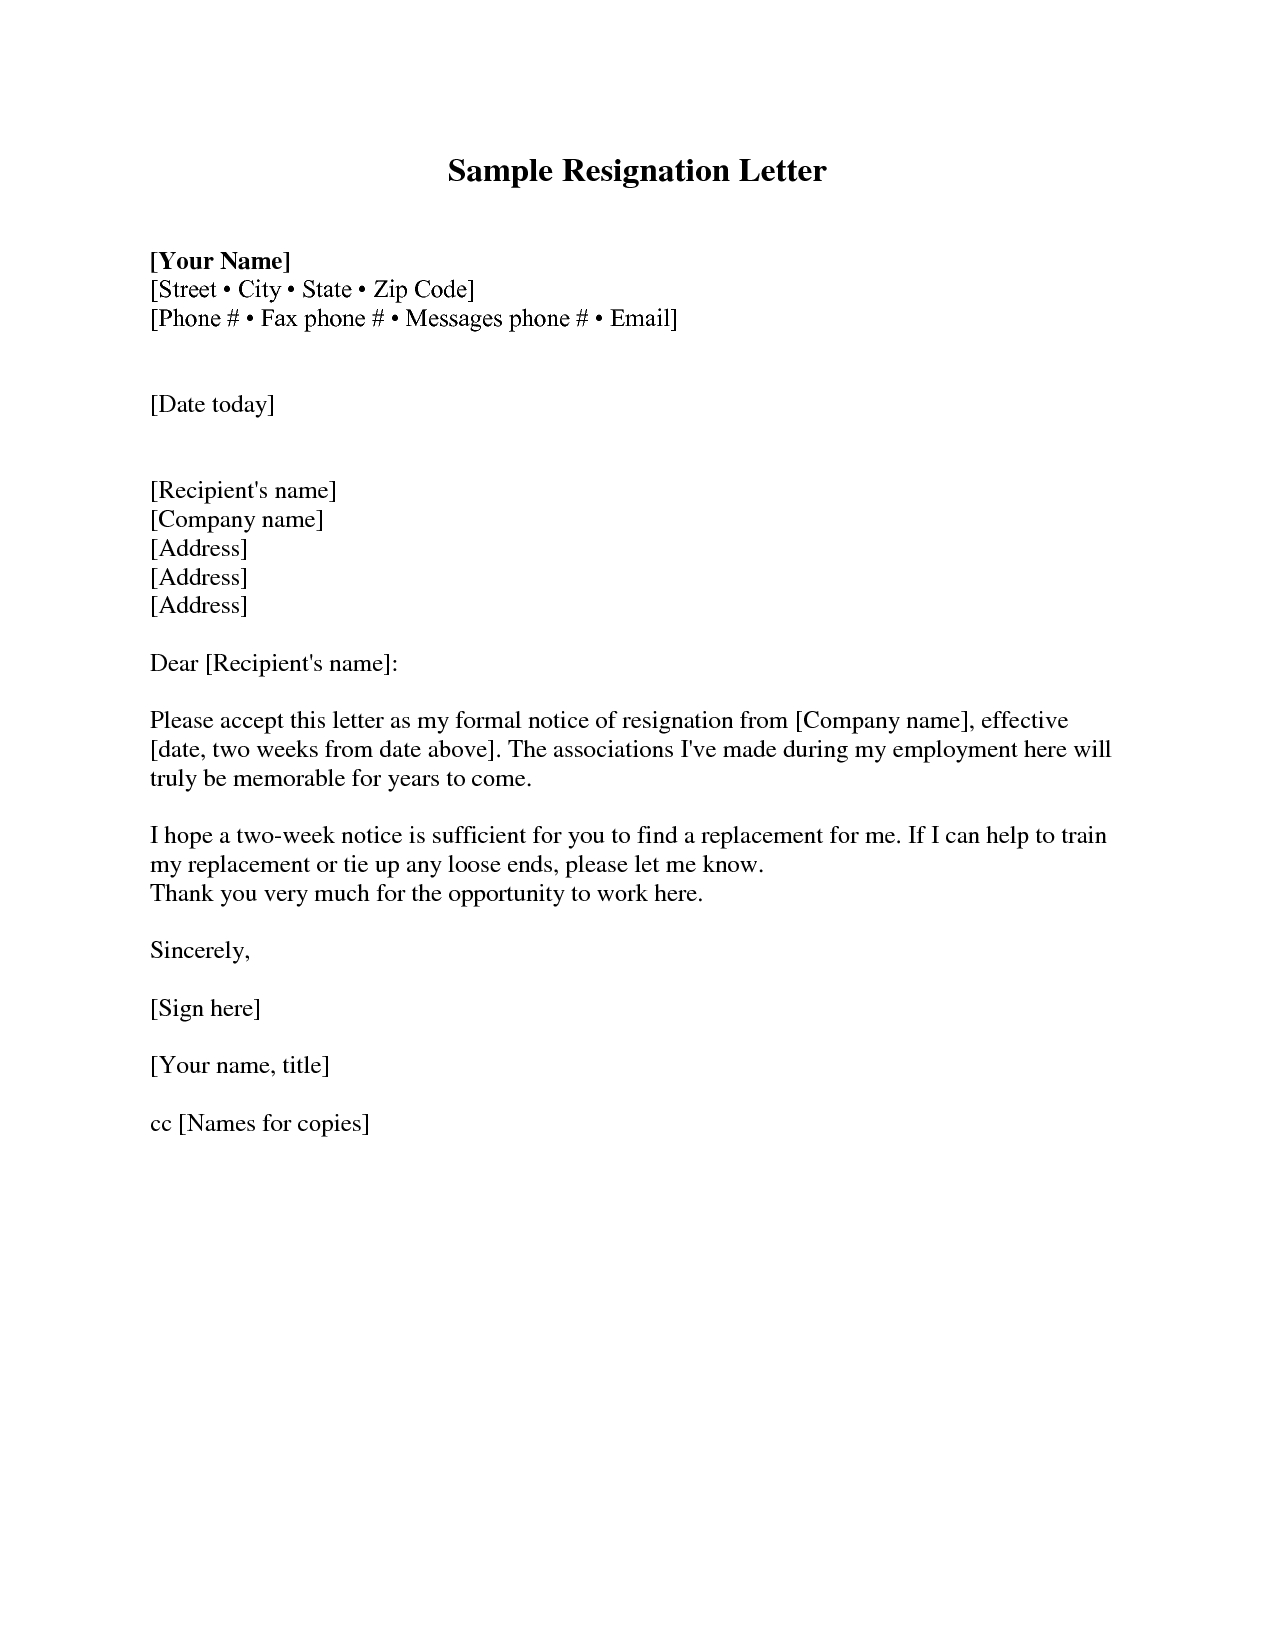 Student Loan forgiveness Letter Template - Resignation Letter Sample 2 Weeks Notice Free2img